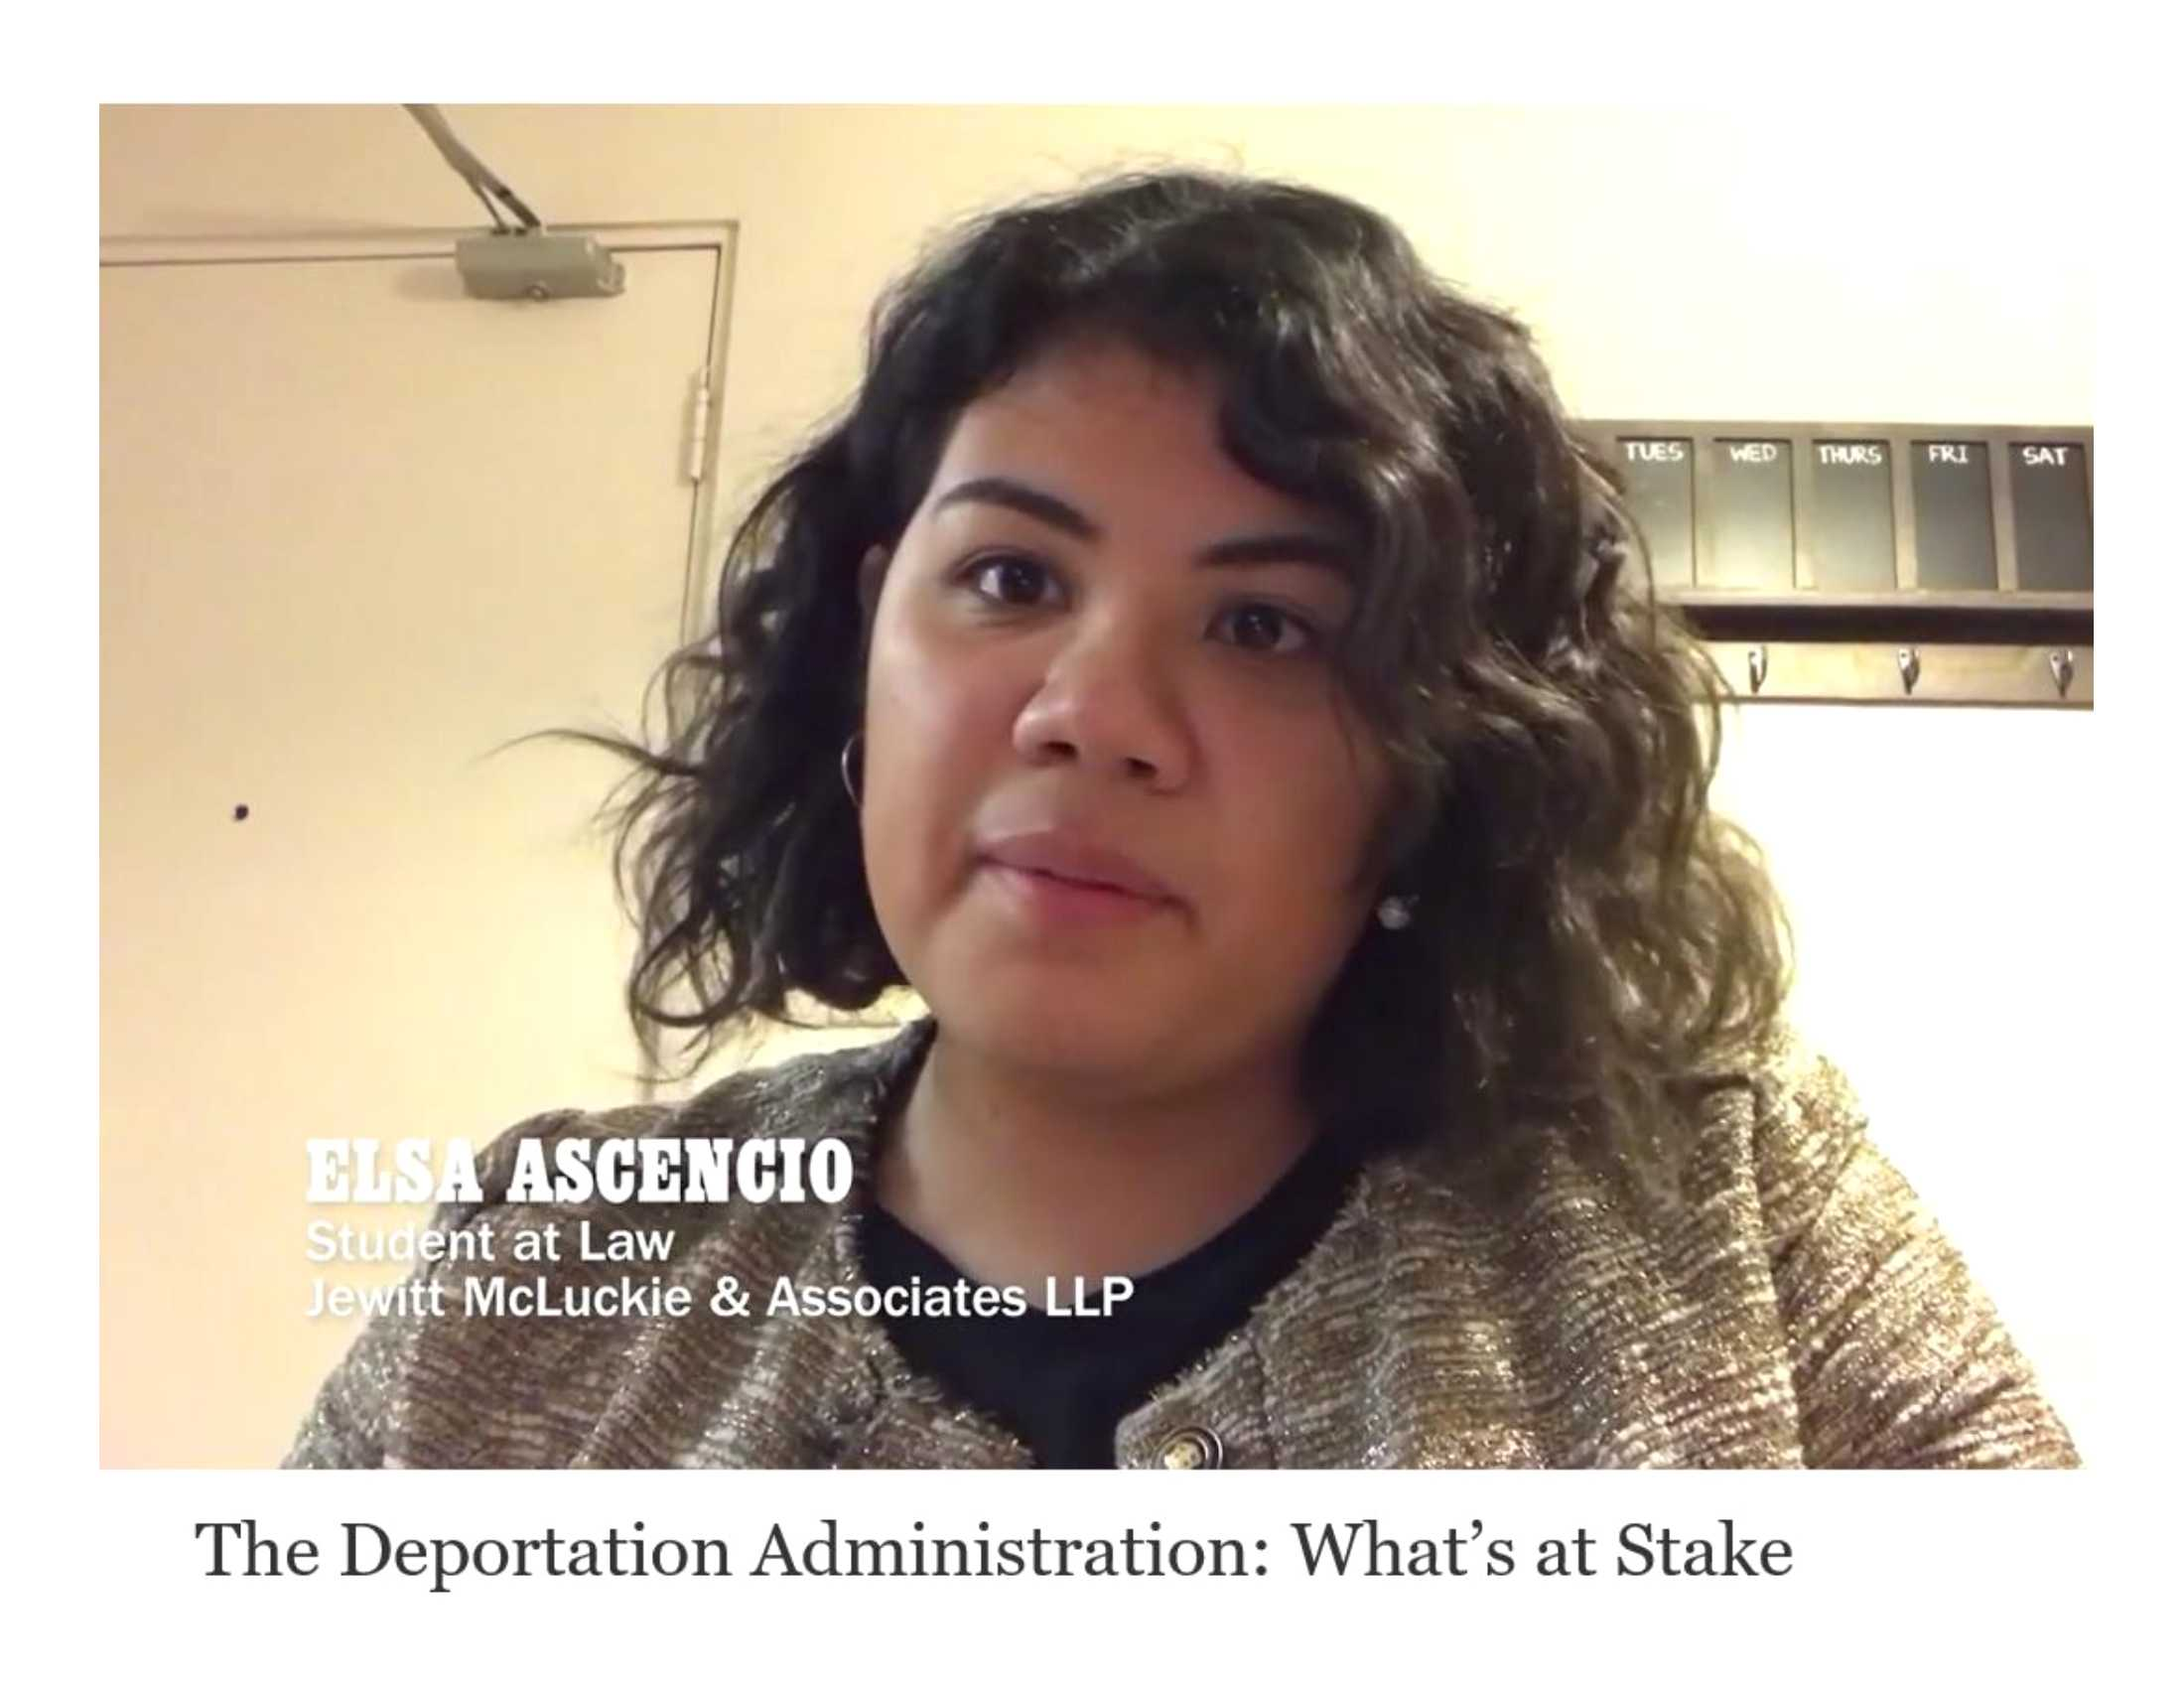 Elsa Ascencio advocates for immigrant justice